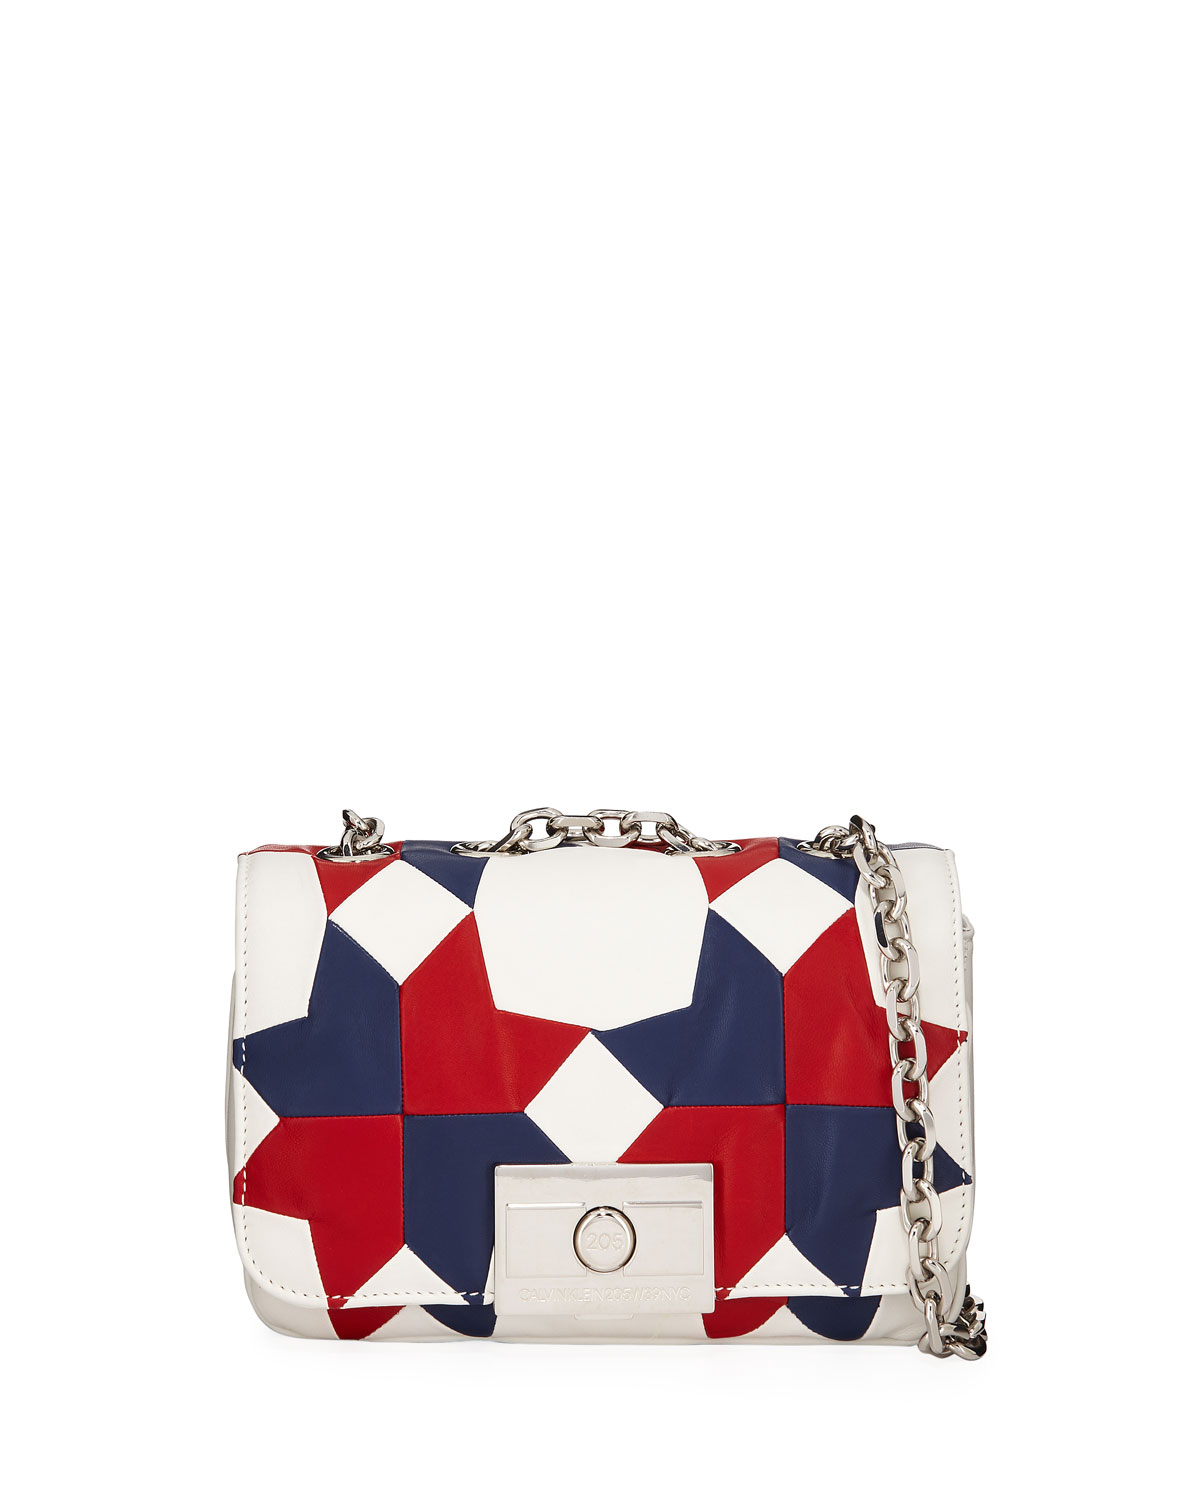 Billie Small Calf Leather Shoulder Bag in White